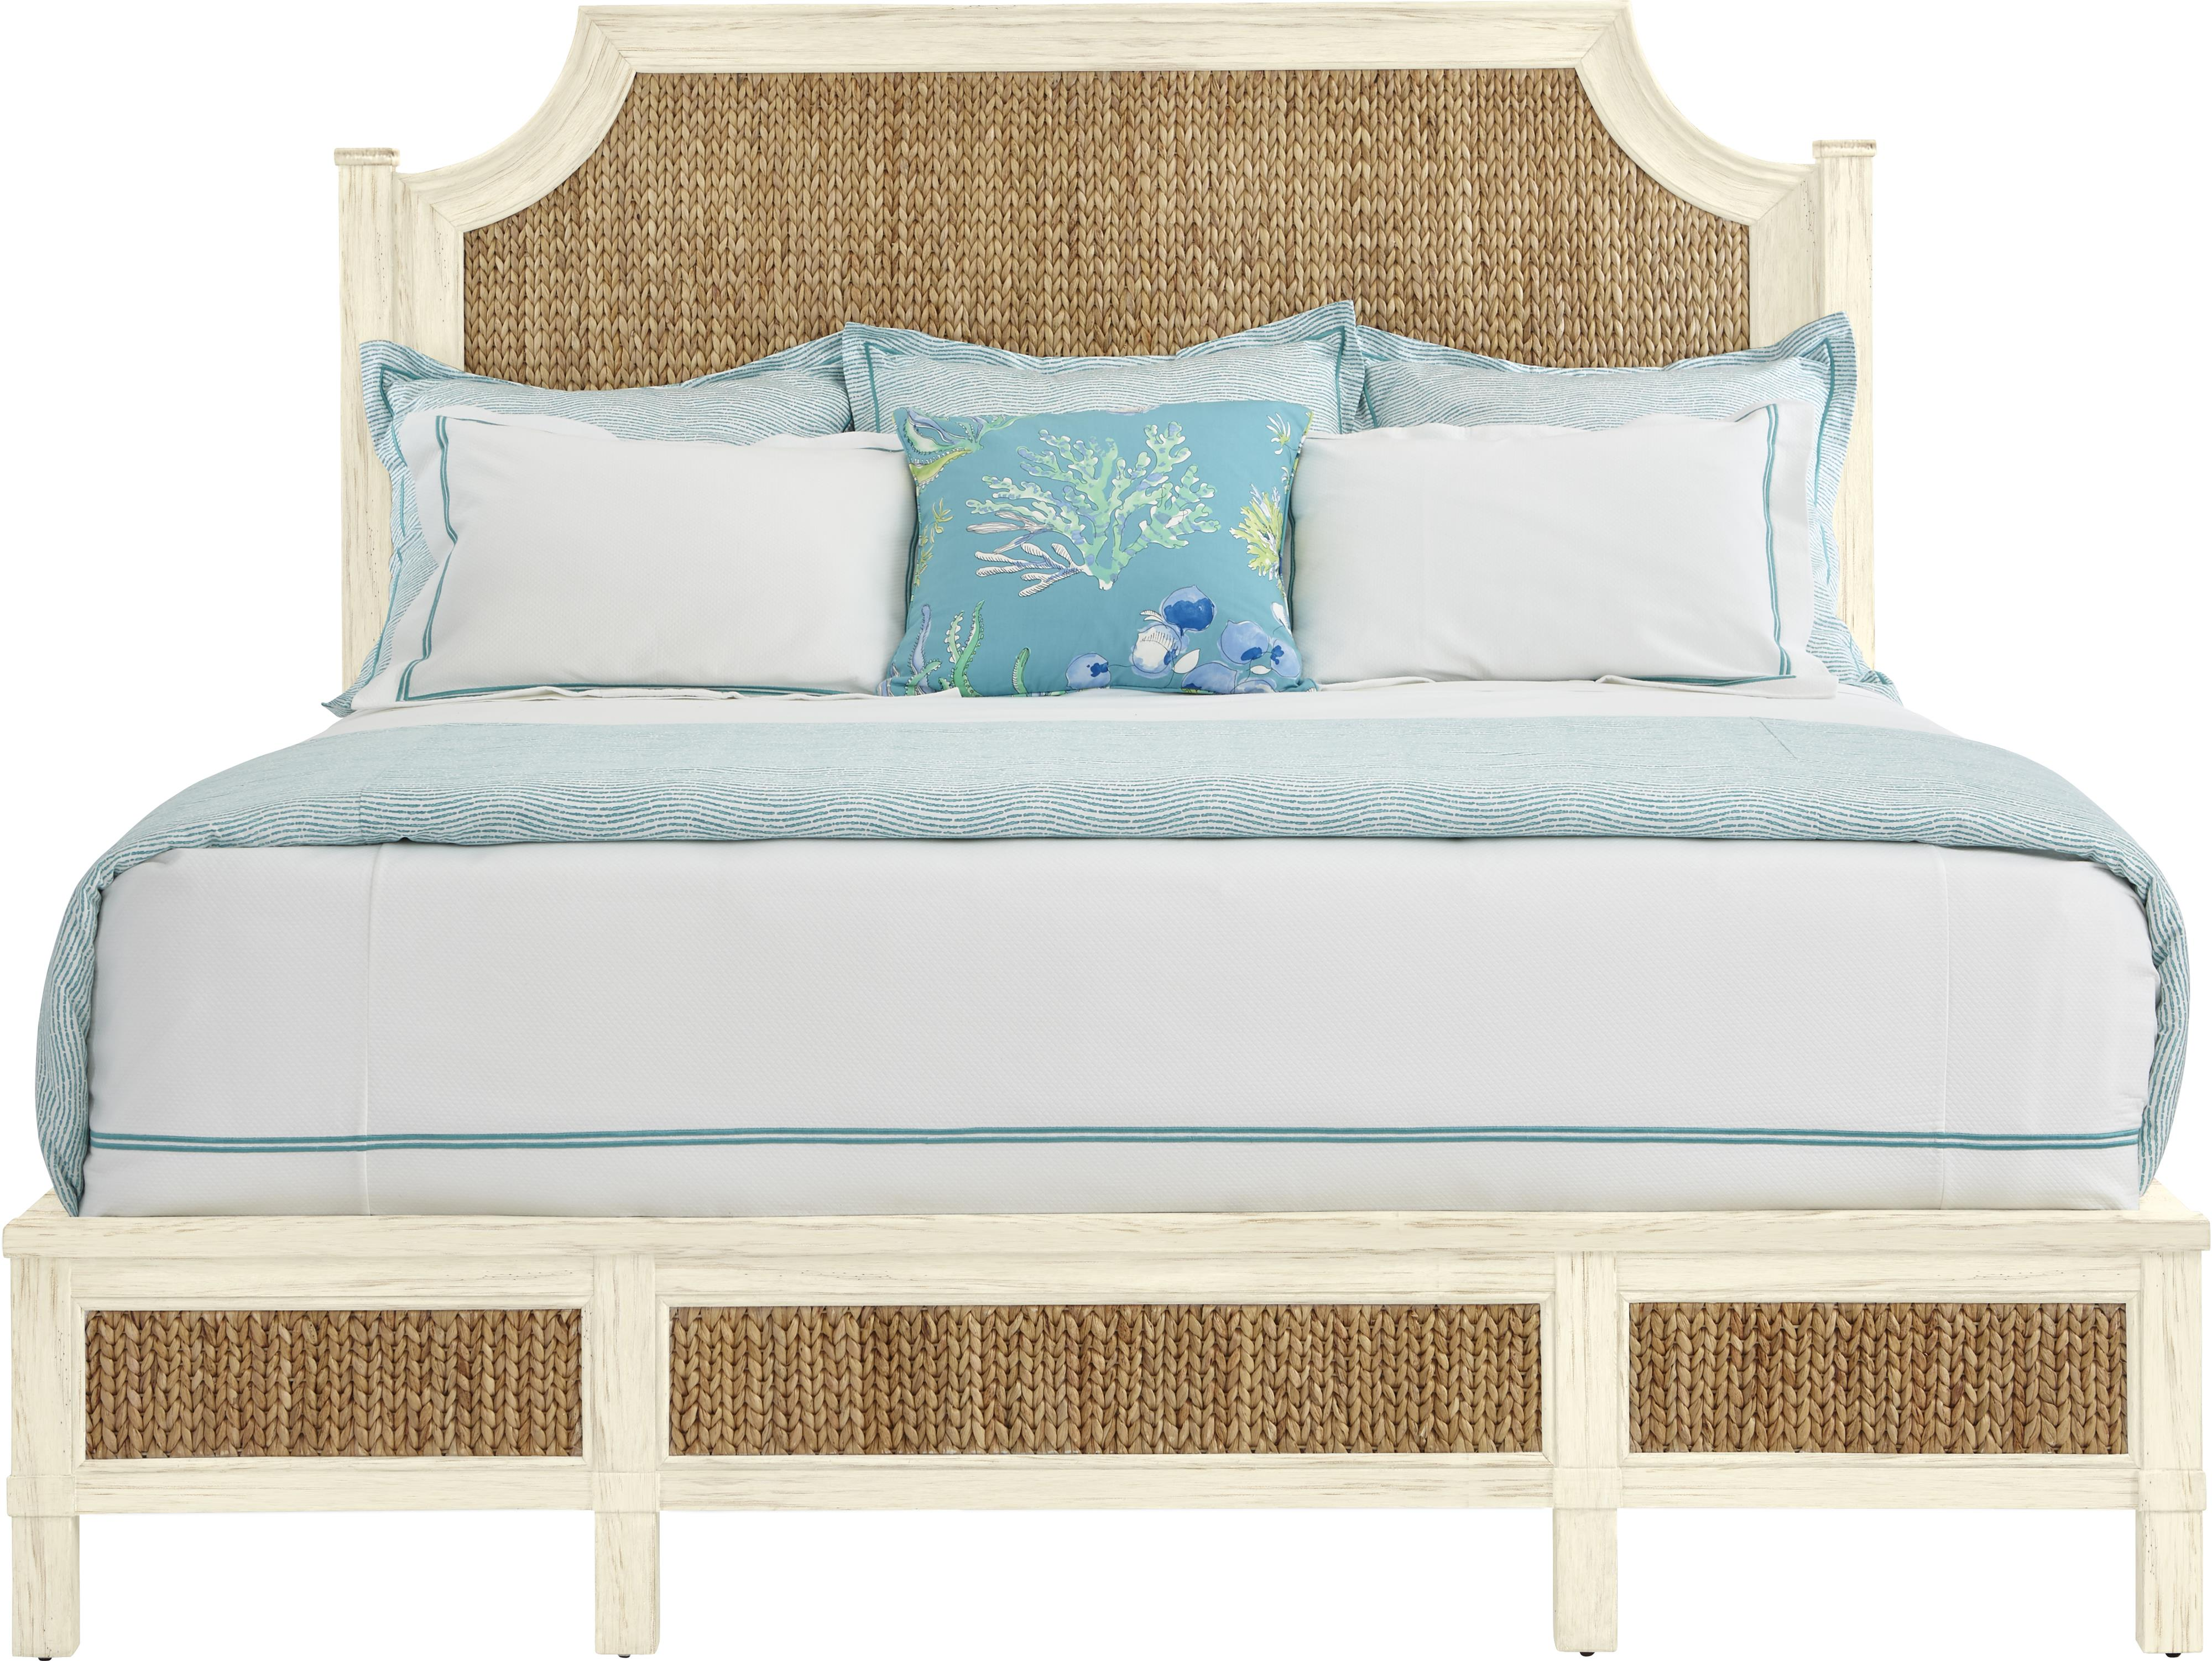 Stanley Furniture Coastal Living Resort Queen Water Meadow Woven Bed - Item Number: 062-A3-41